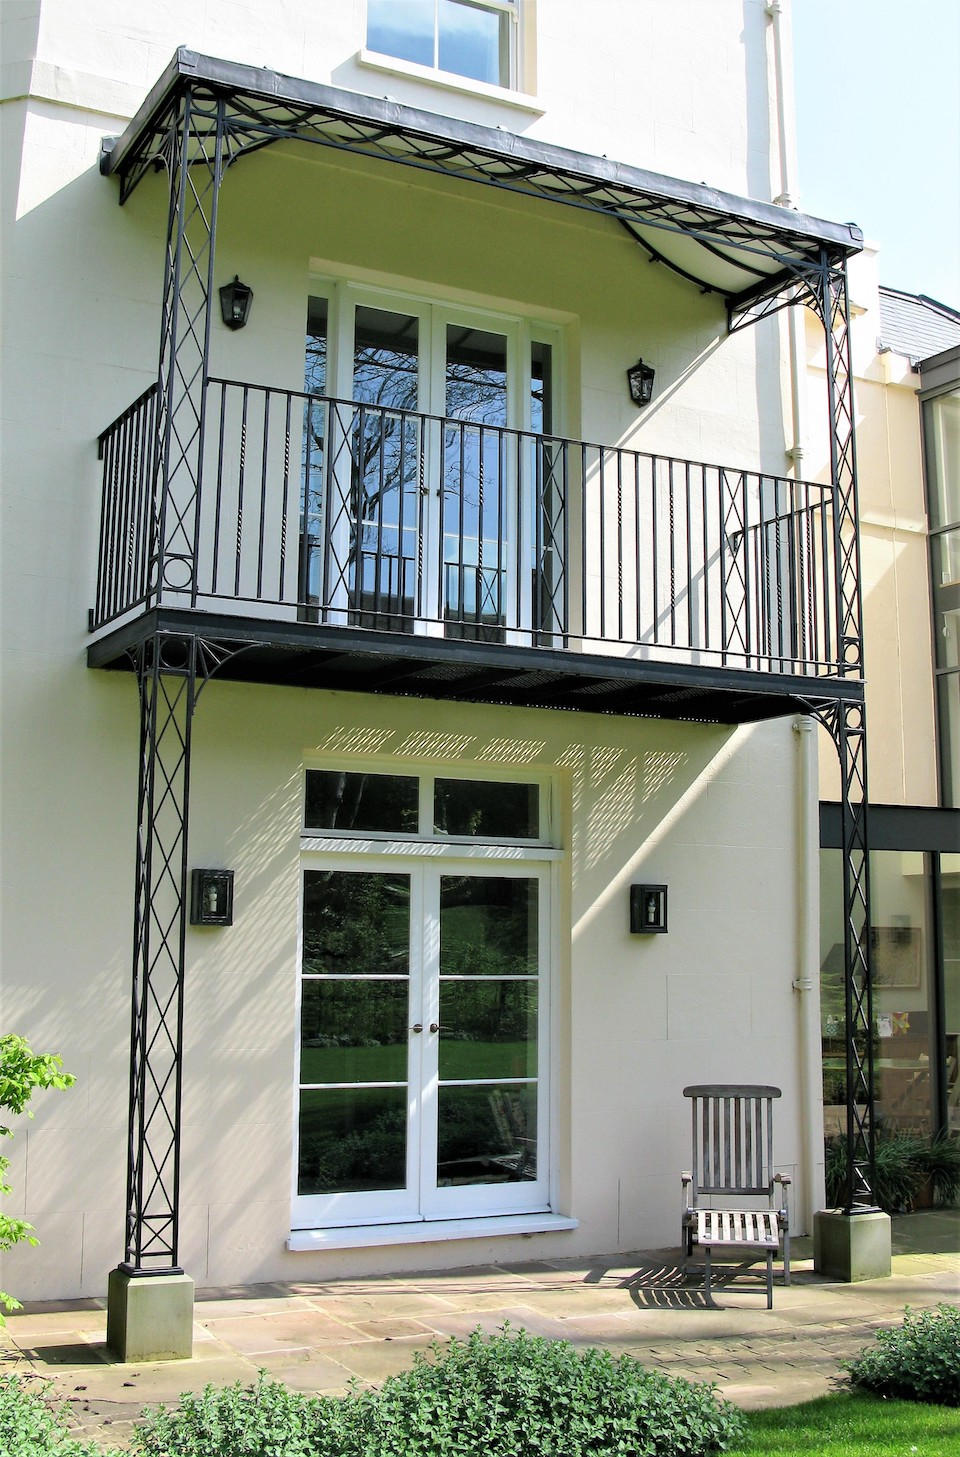 Traditionally made yet Modern Regency Ironwork Veranda Balcony with Matching Wrought Iron Railings and Floor Deck, Stone Plinths, Cast Shoe Covers, Spandrel Brackets and a Lined and Leaded Roof Frame Covering a Side Entrance and French Doors From a Master Bedroom